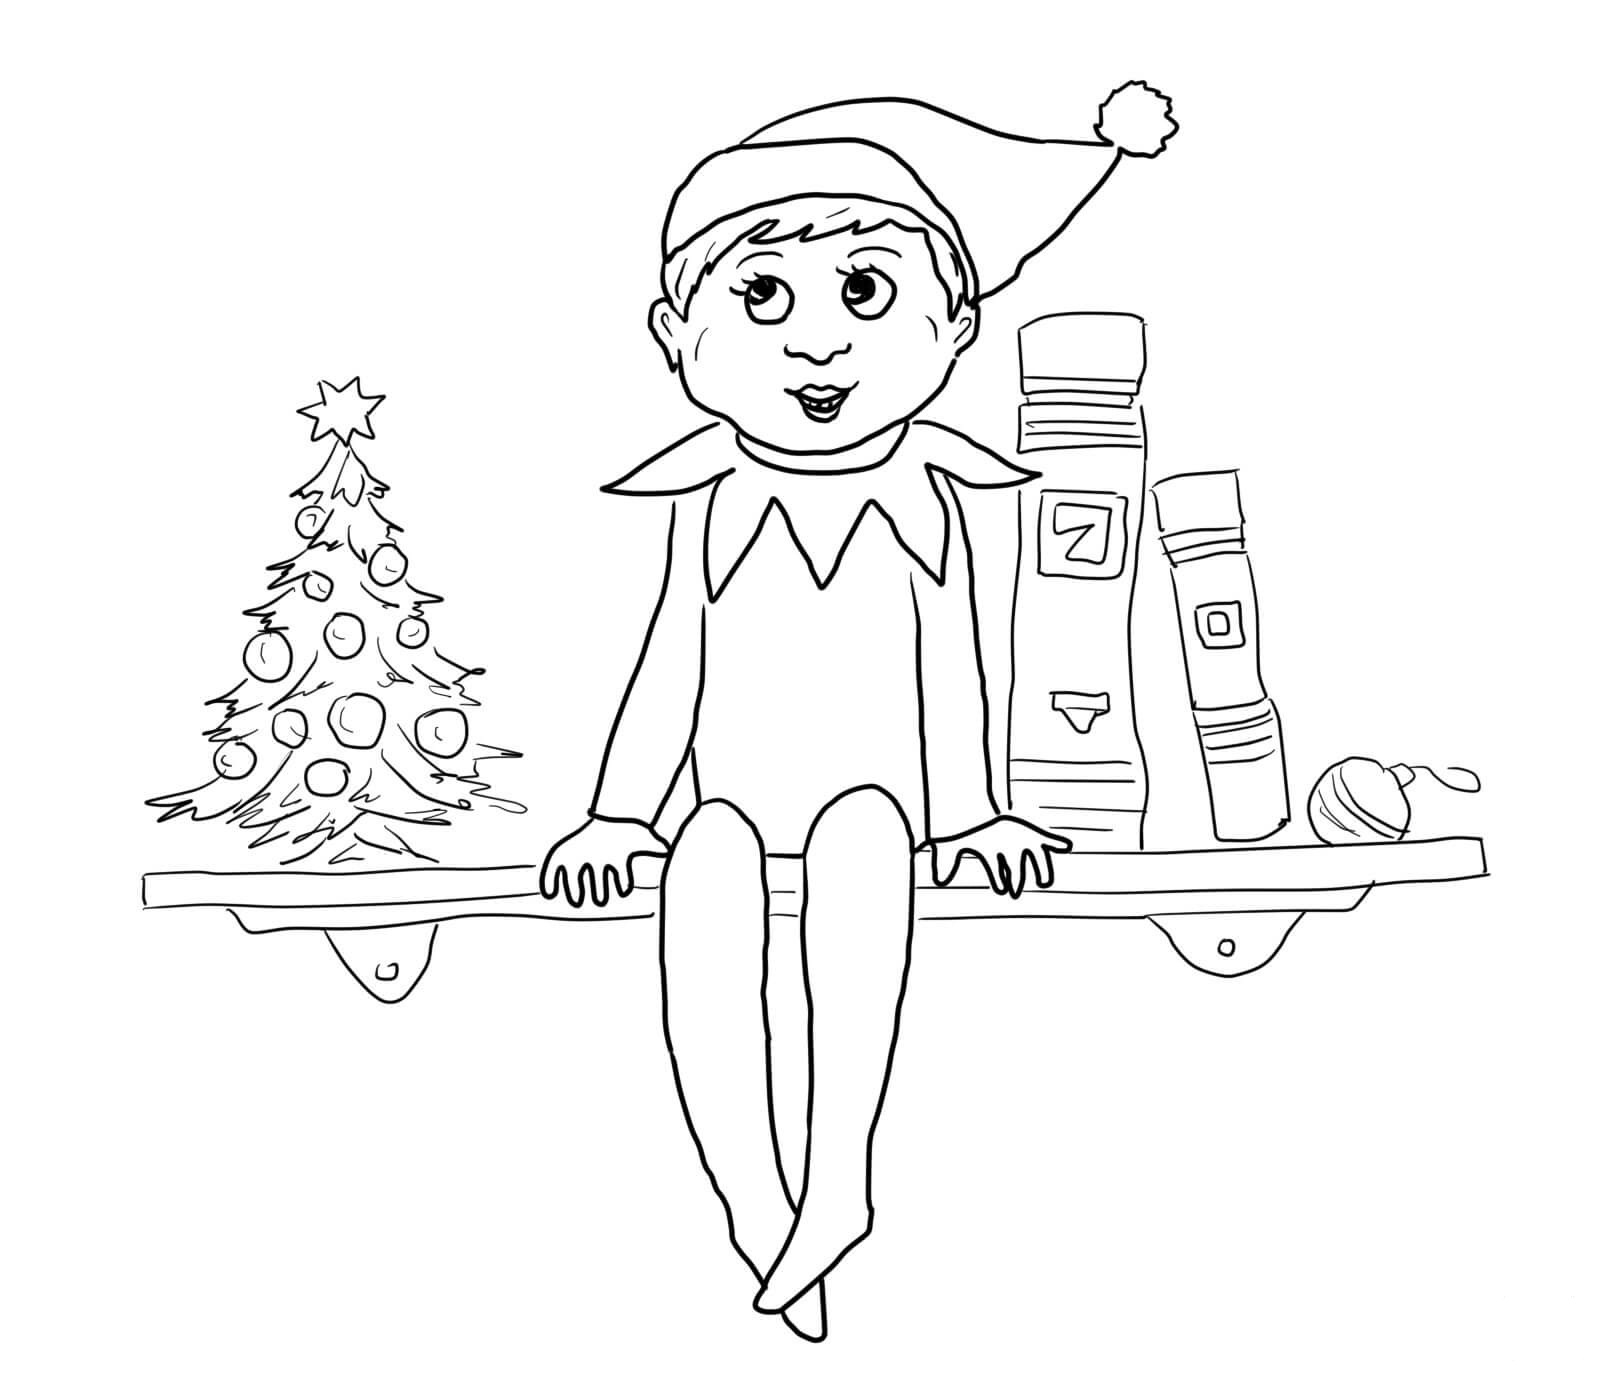 elf coloring sheet coloring page kids for fantasy image photos elves sheet elf coloring